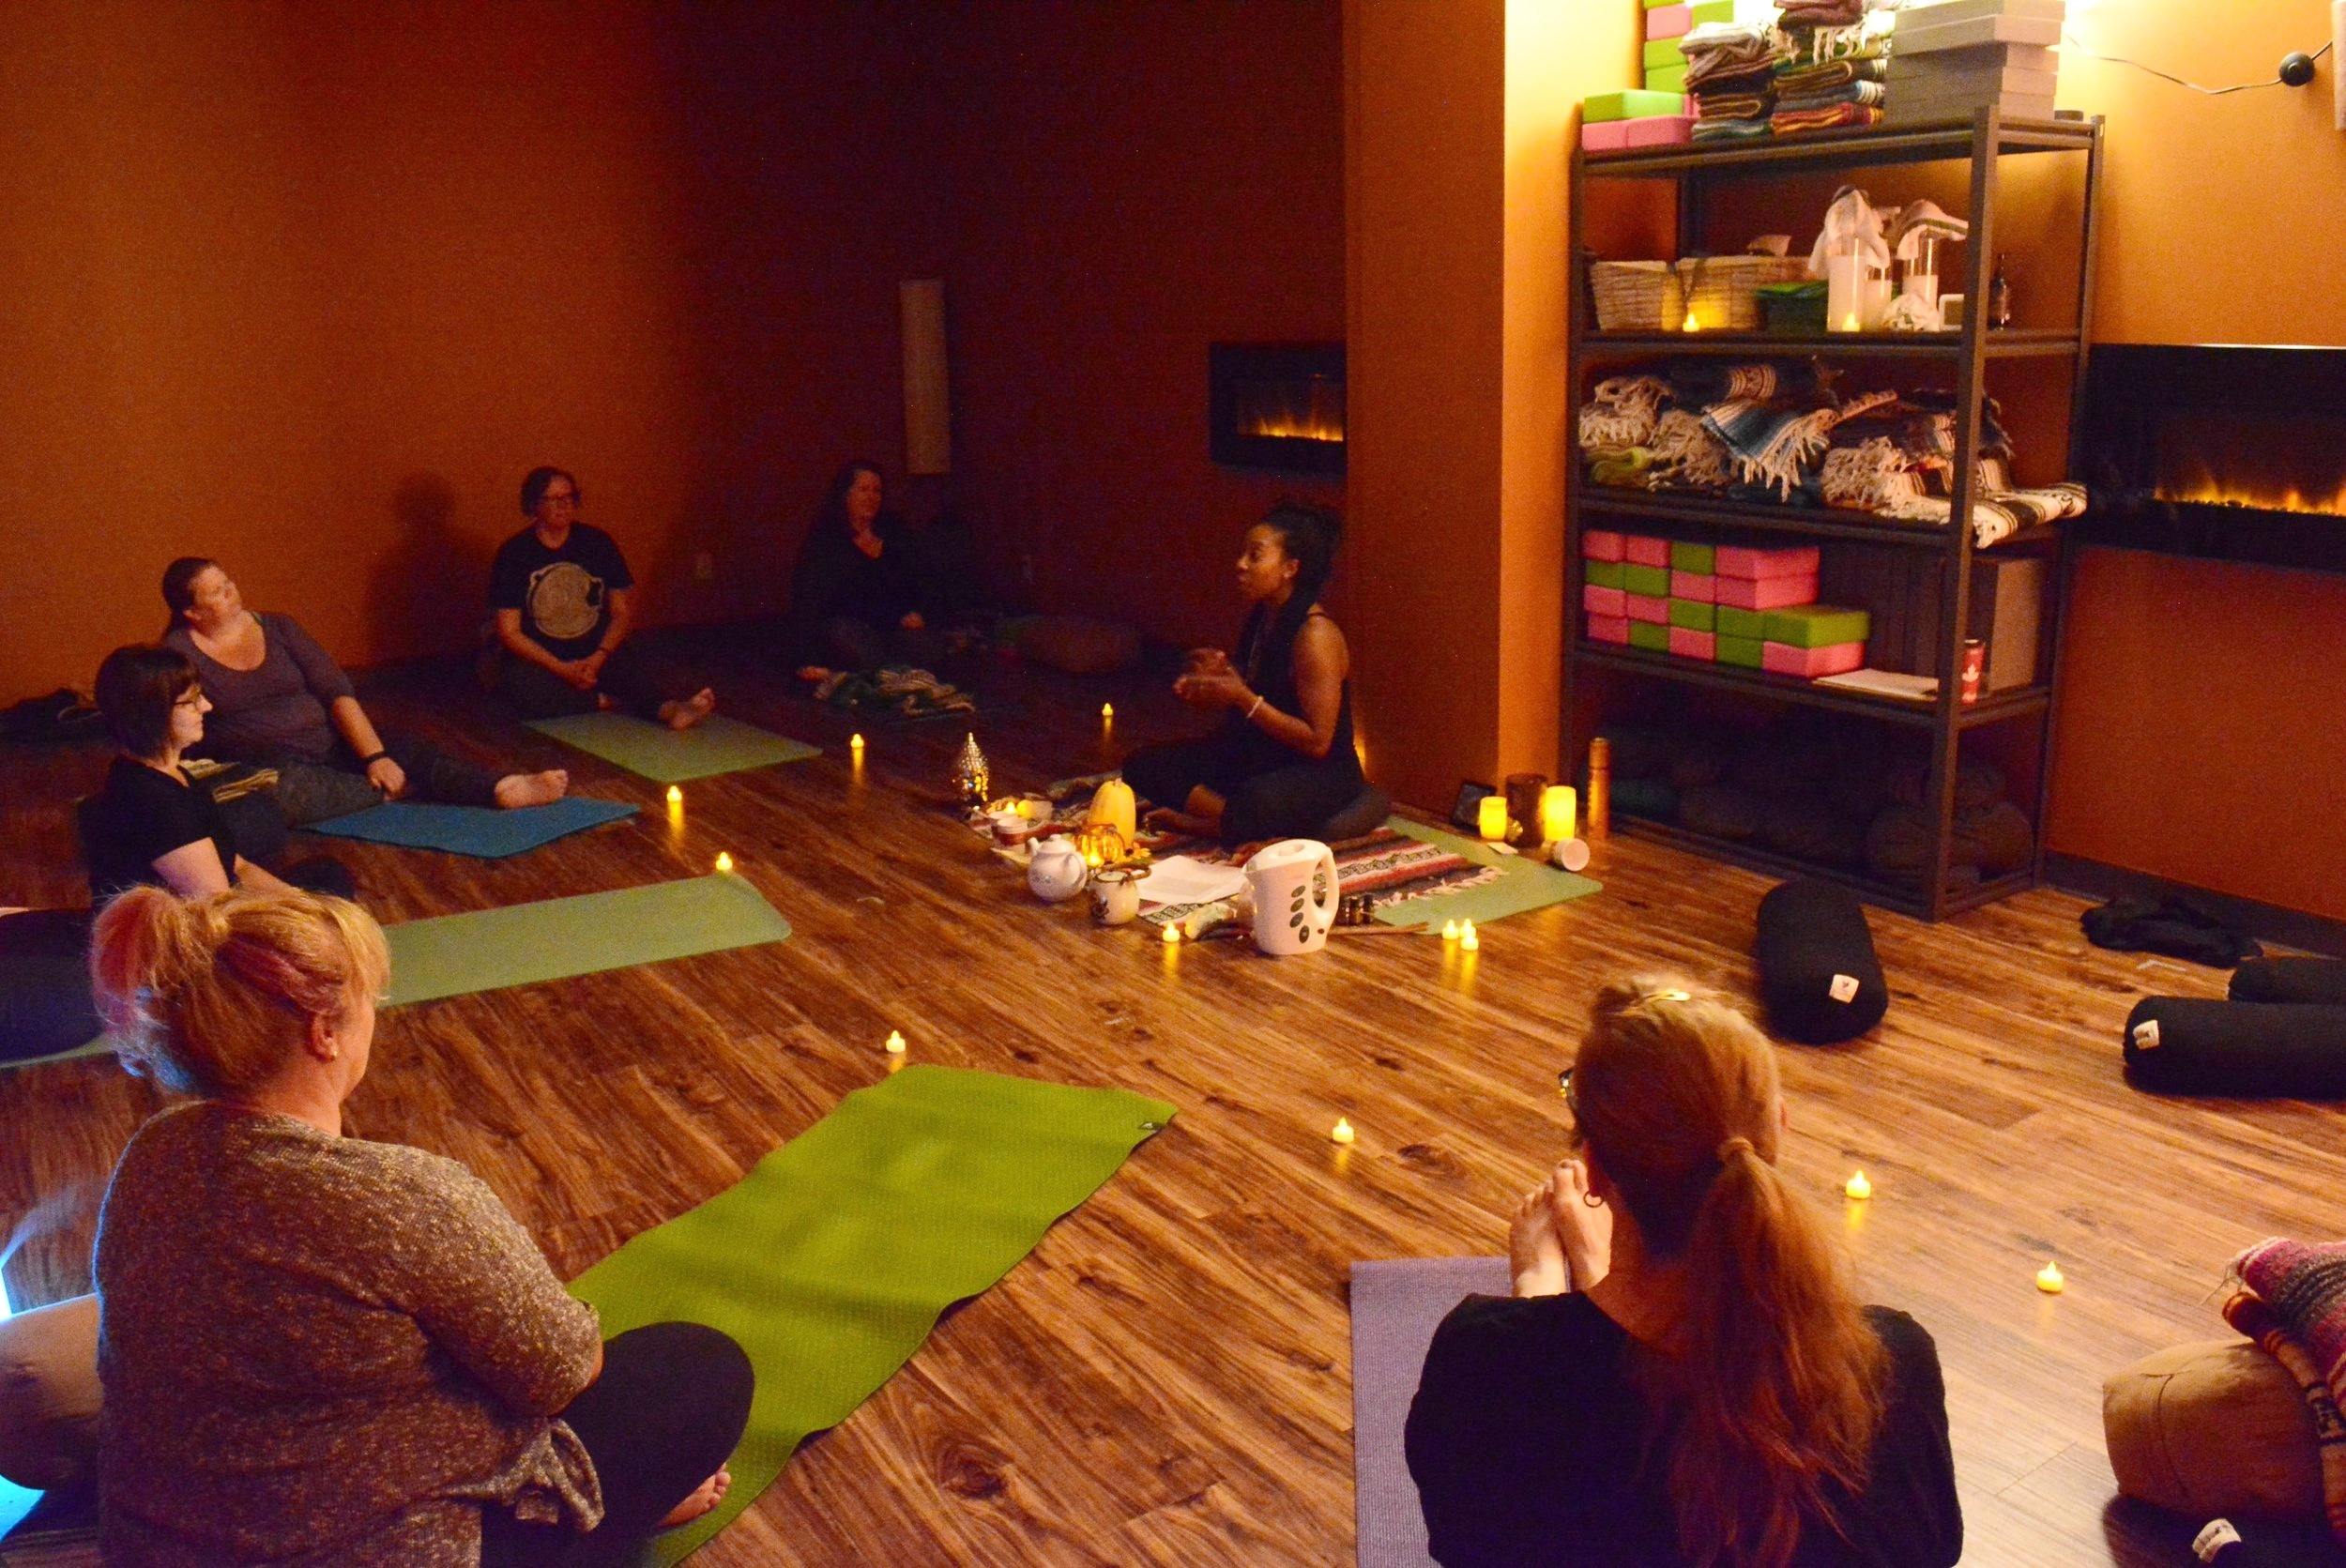 Autumn Equinox Celebration 2016 hosted out of Above Average Yoga Studio in Edmonton, AB